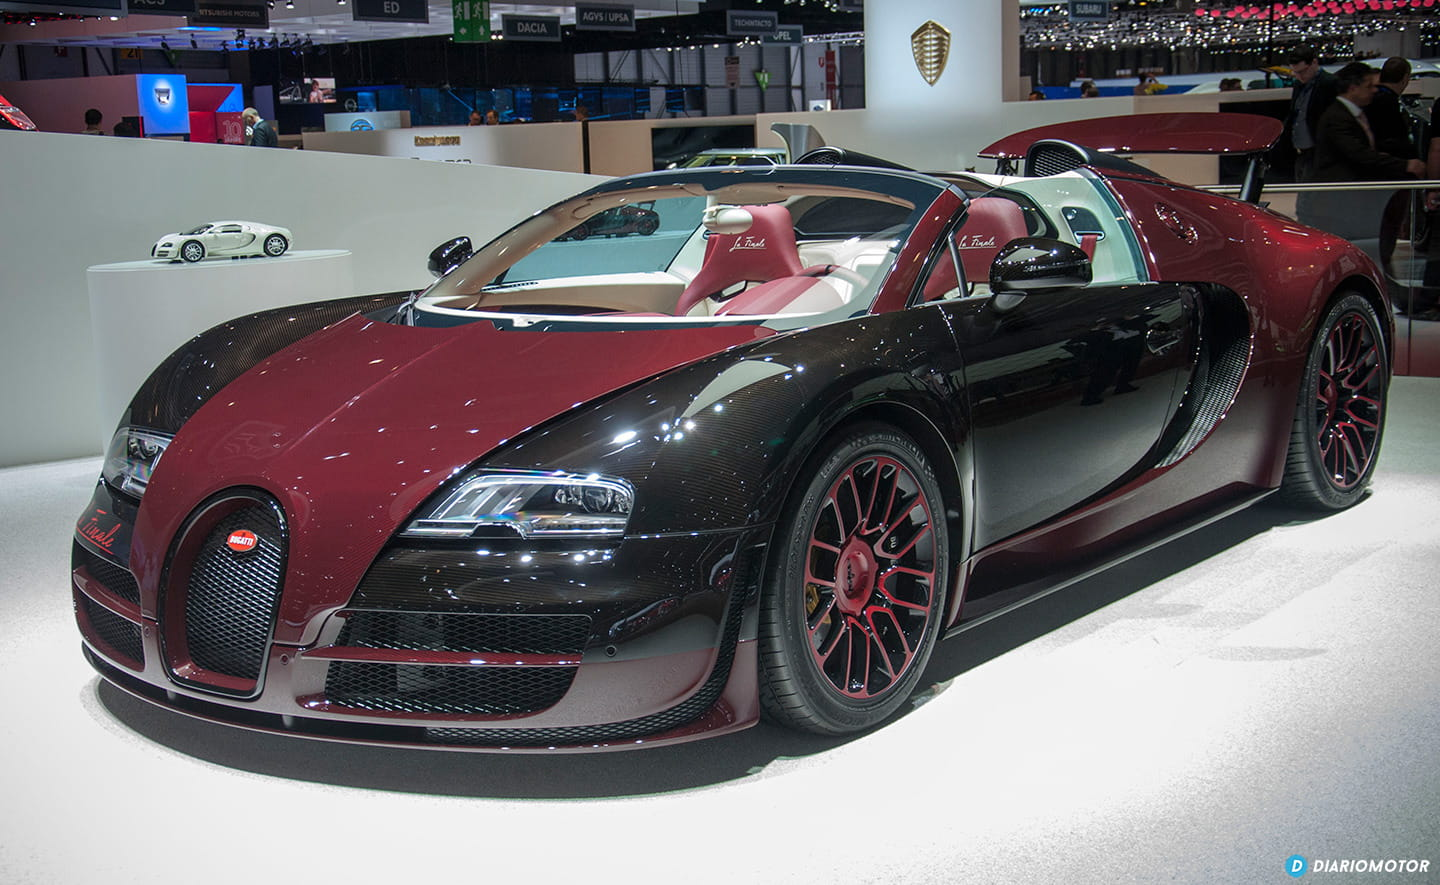 a solas foto a foto con el ltimo bugatti veyron de la historia la finale. Black Bedroom Furniture Sets. Home Design Ideas